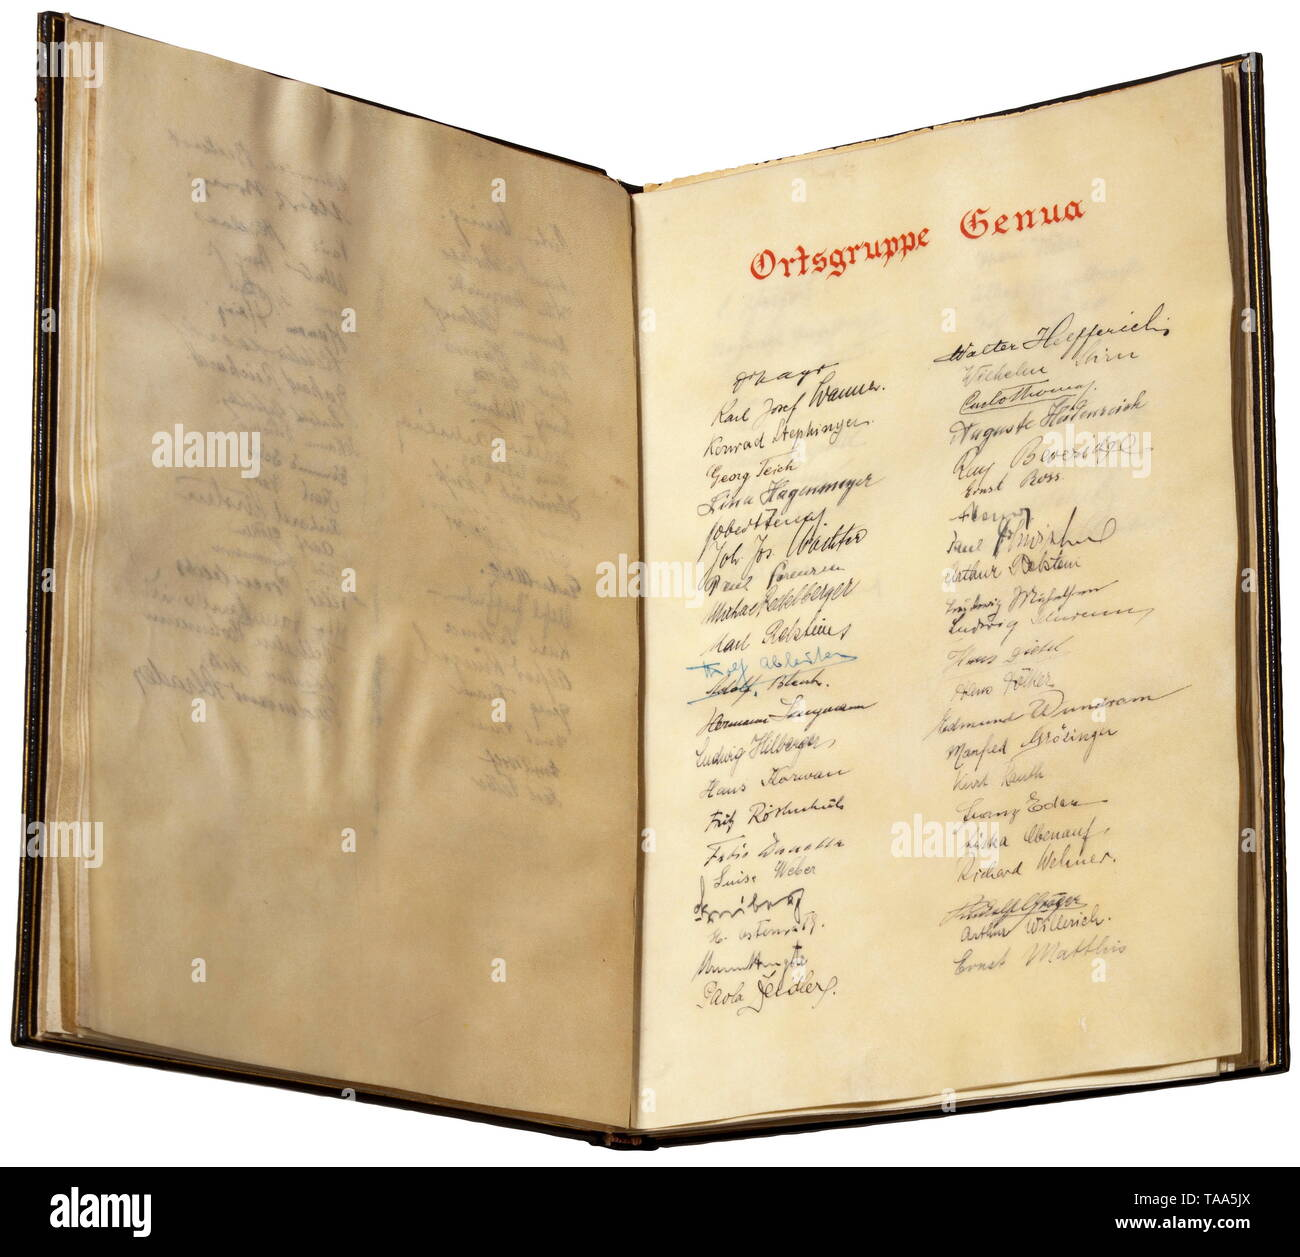 "Adolf Hitler - presentation volume for his visit in Italy 1938 Magnificent presentation volume with the signatures of all members of Local Groups Milan (334), Rome (184), Turino (82), Genoa (65), Merano (61), Naples (88), Venice (42), Trieste (28), Florence (40) etc, all together 1169 signatures on parchment. A calligraphic dedication on the flyleaf from the national group leaders, diplomatic envoys in Italy, and SS-Brigadeführer Erwin Ettel with a signature ""Ettel"" in his own hand. Dark-blue leather binding stamped in gold. In a red leather velvet lined presentation case (, Editorial-Use-Only Stock Photo"